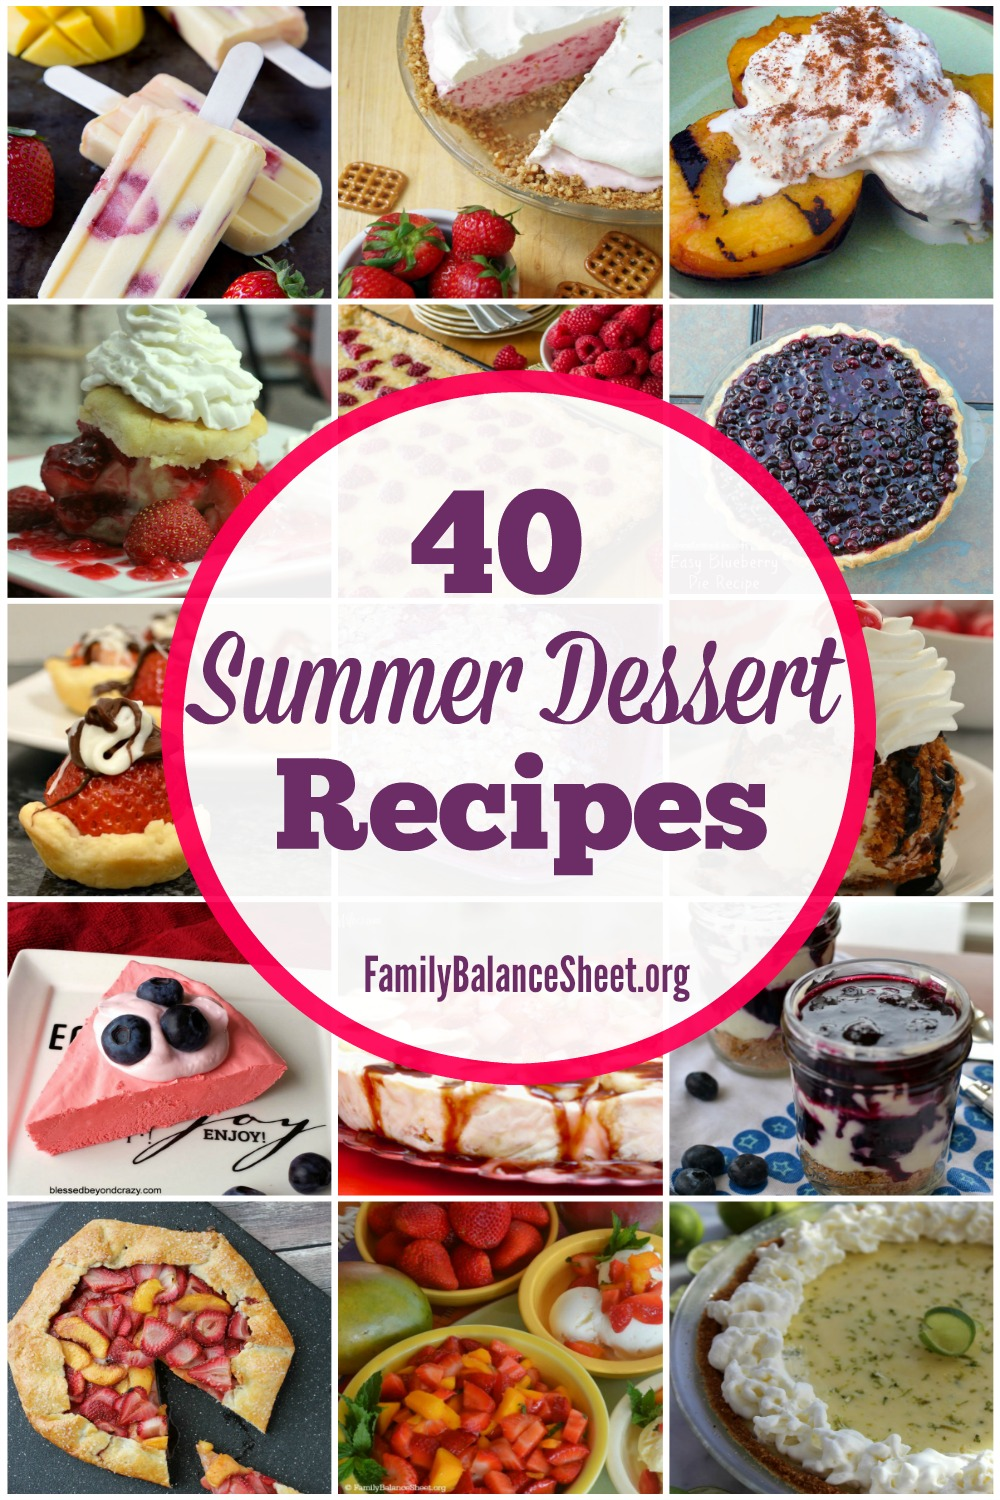 40 Summer Dessert Recipes Family Balance Sheet